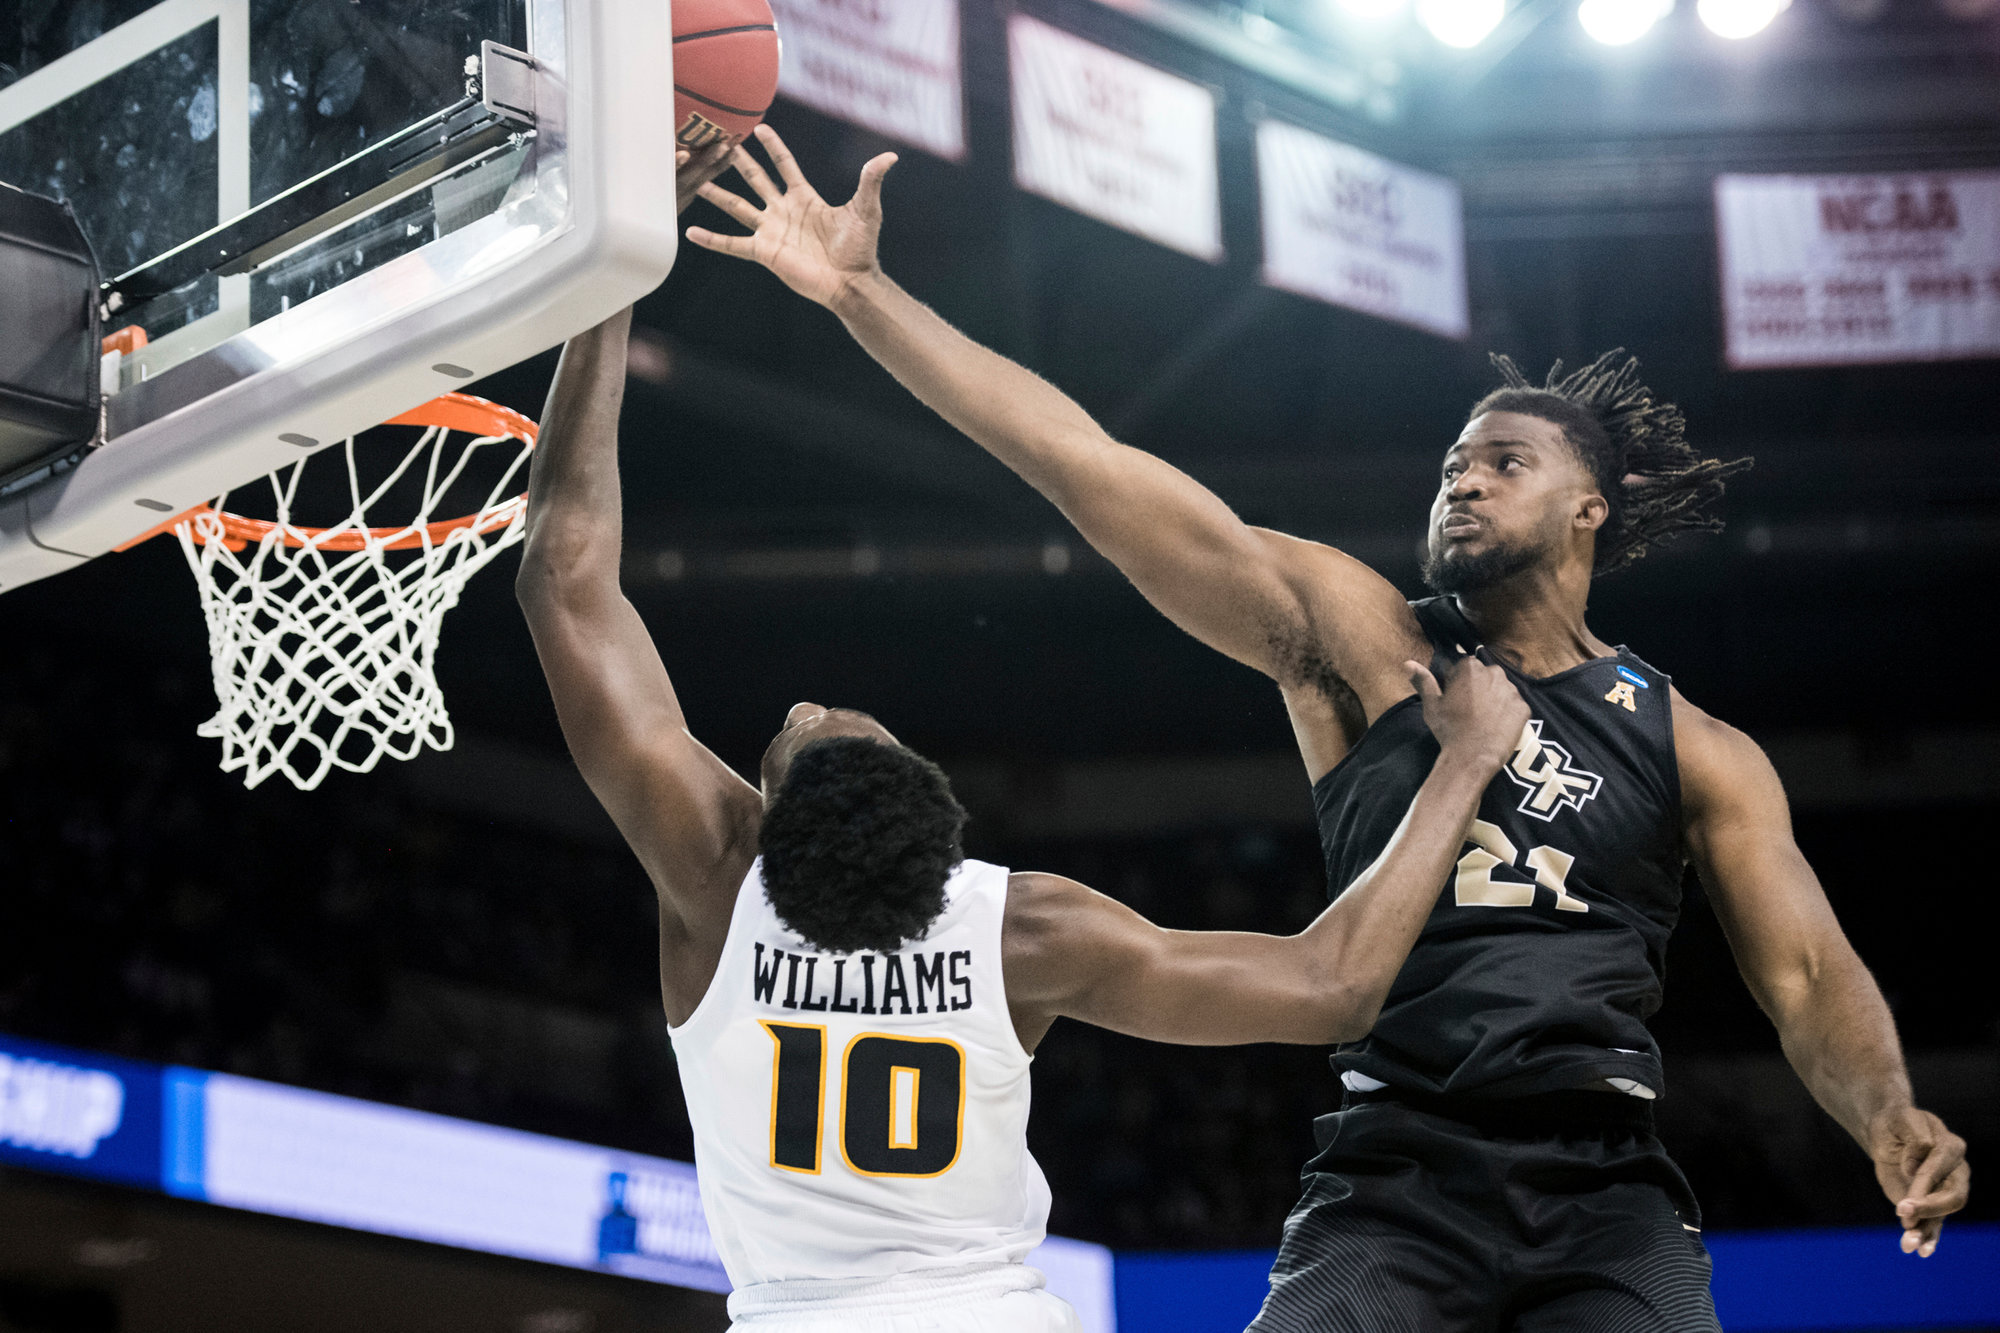 Offensive struggles hurt Rams in first round, downed by UCF